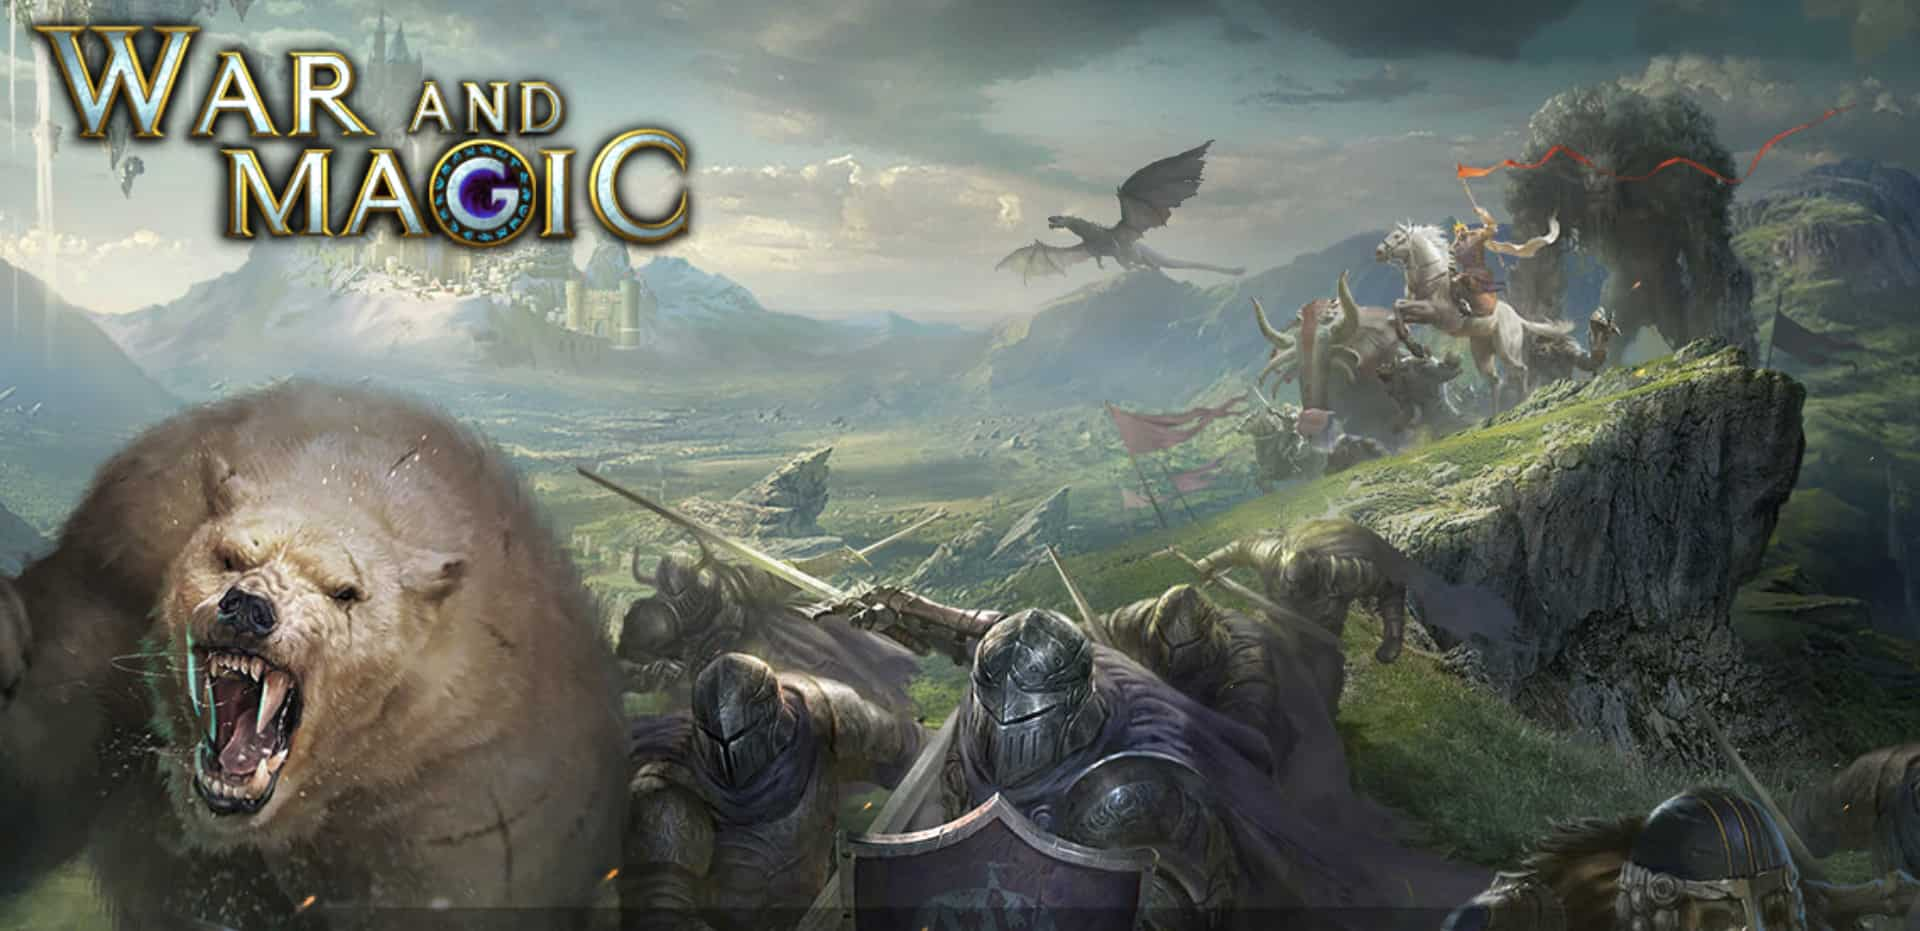 Download War and Magic on PC